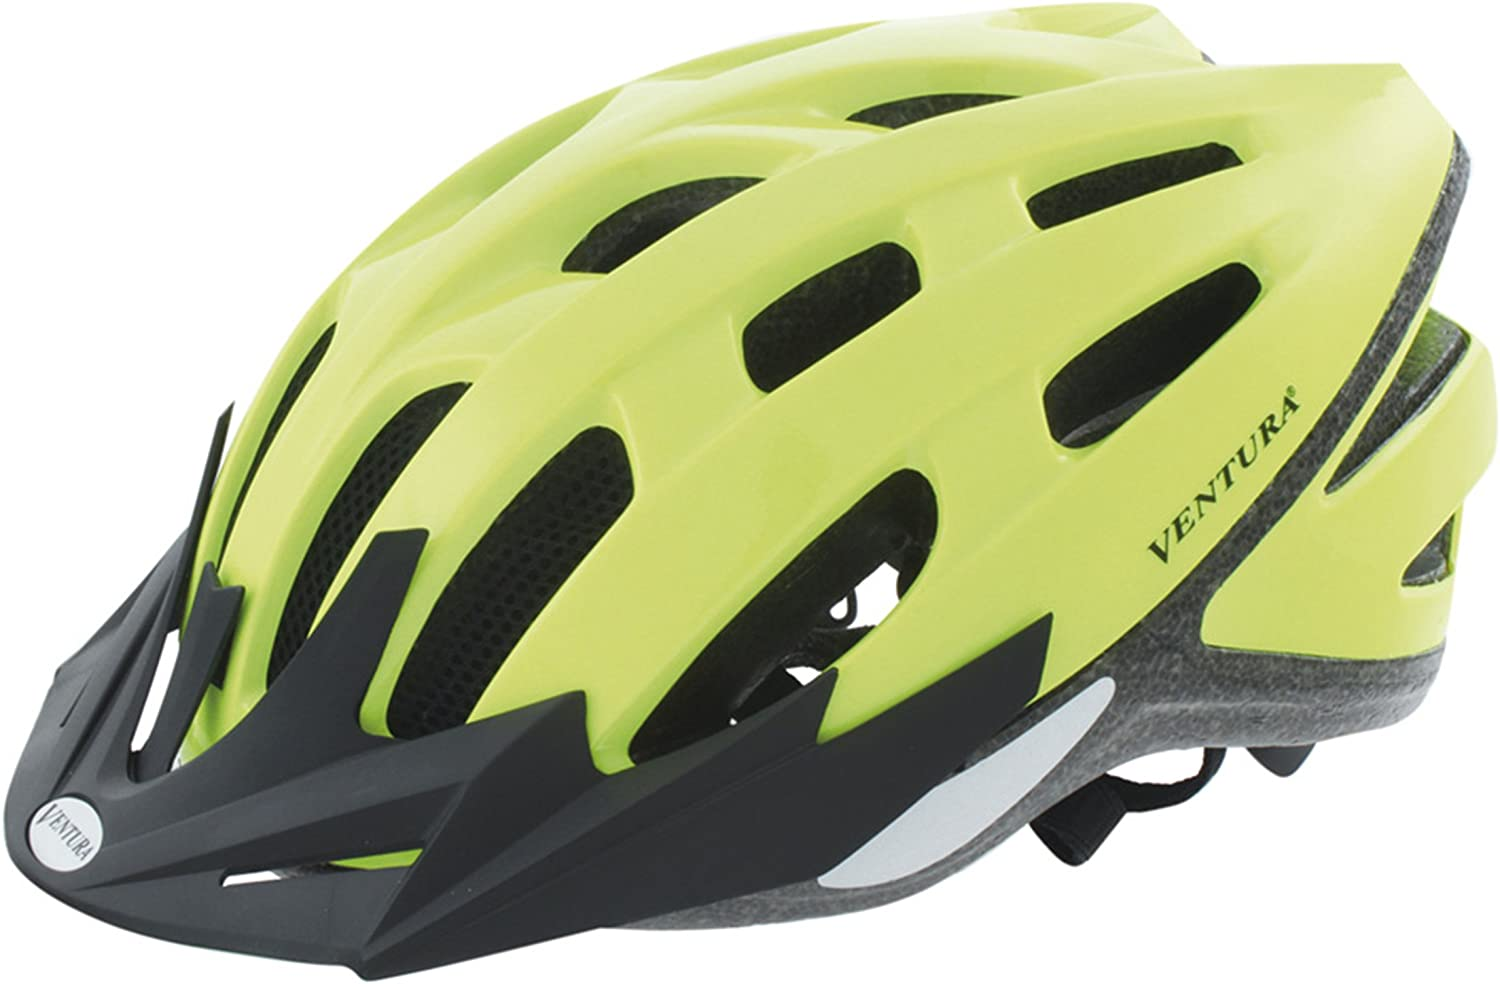 Ventura Semi In-Mold Cycling Manufacturer OFFicial shop Helmet 1 year warranty